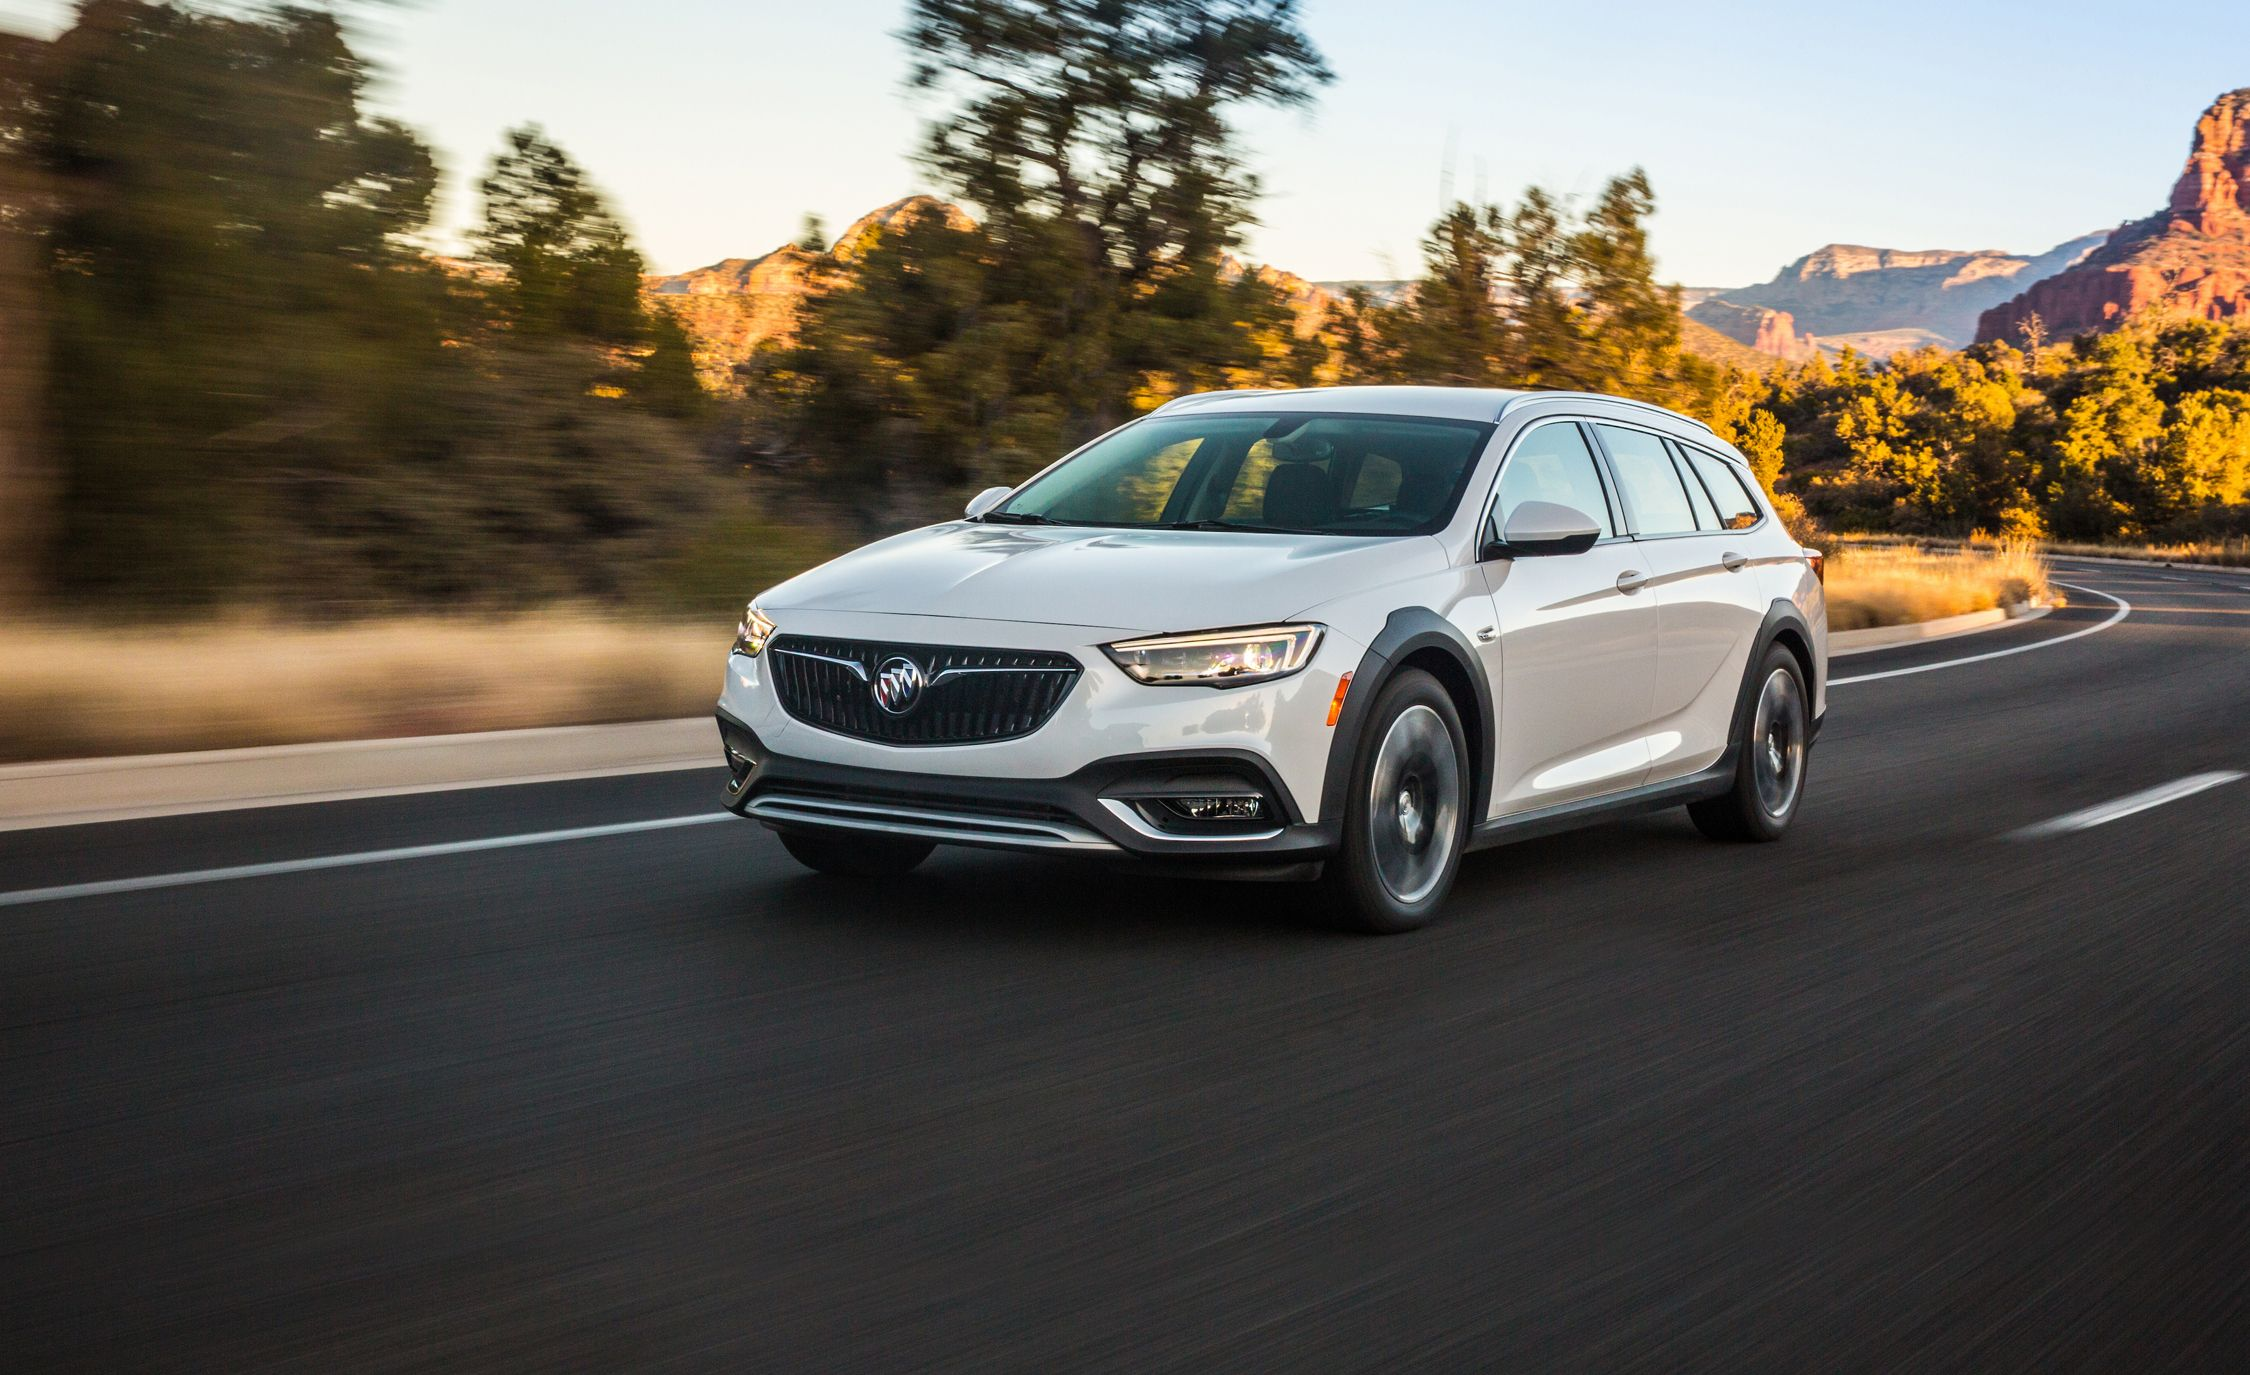 2018 buick regal tourx driven the first buick wagon in decades street level pundit. Black Bedroom Furniture Sets. Home Design Ideas